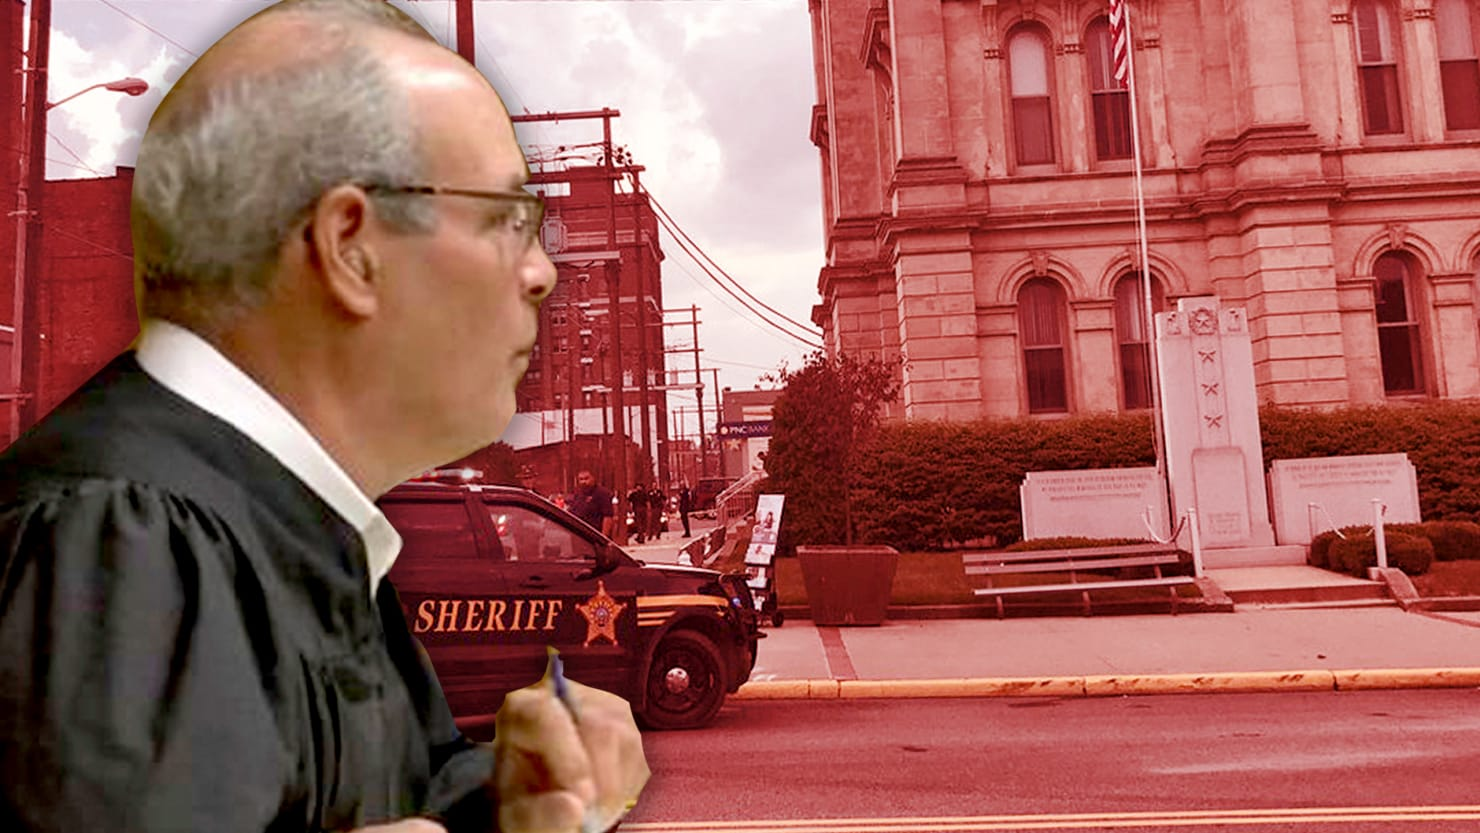 Judge Joseph Bruzzese survived an attack by a gunman in Steubenville, Ohio, after he returned fire Monday morning. The sheriff said he told Bruzzese to pack heat.